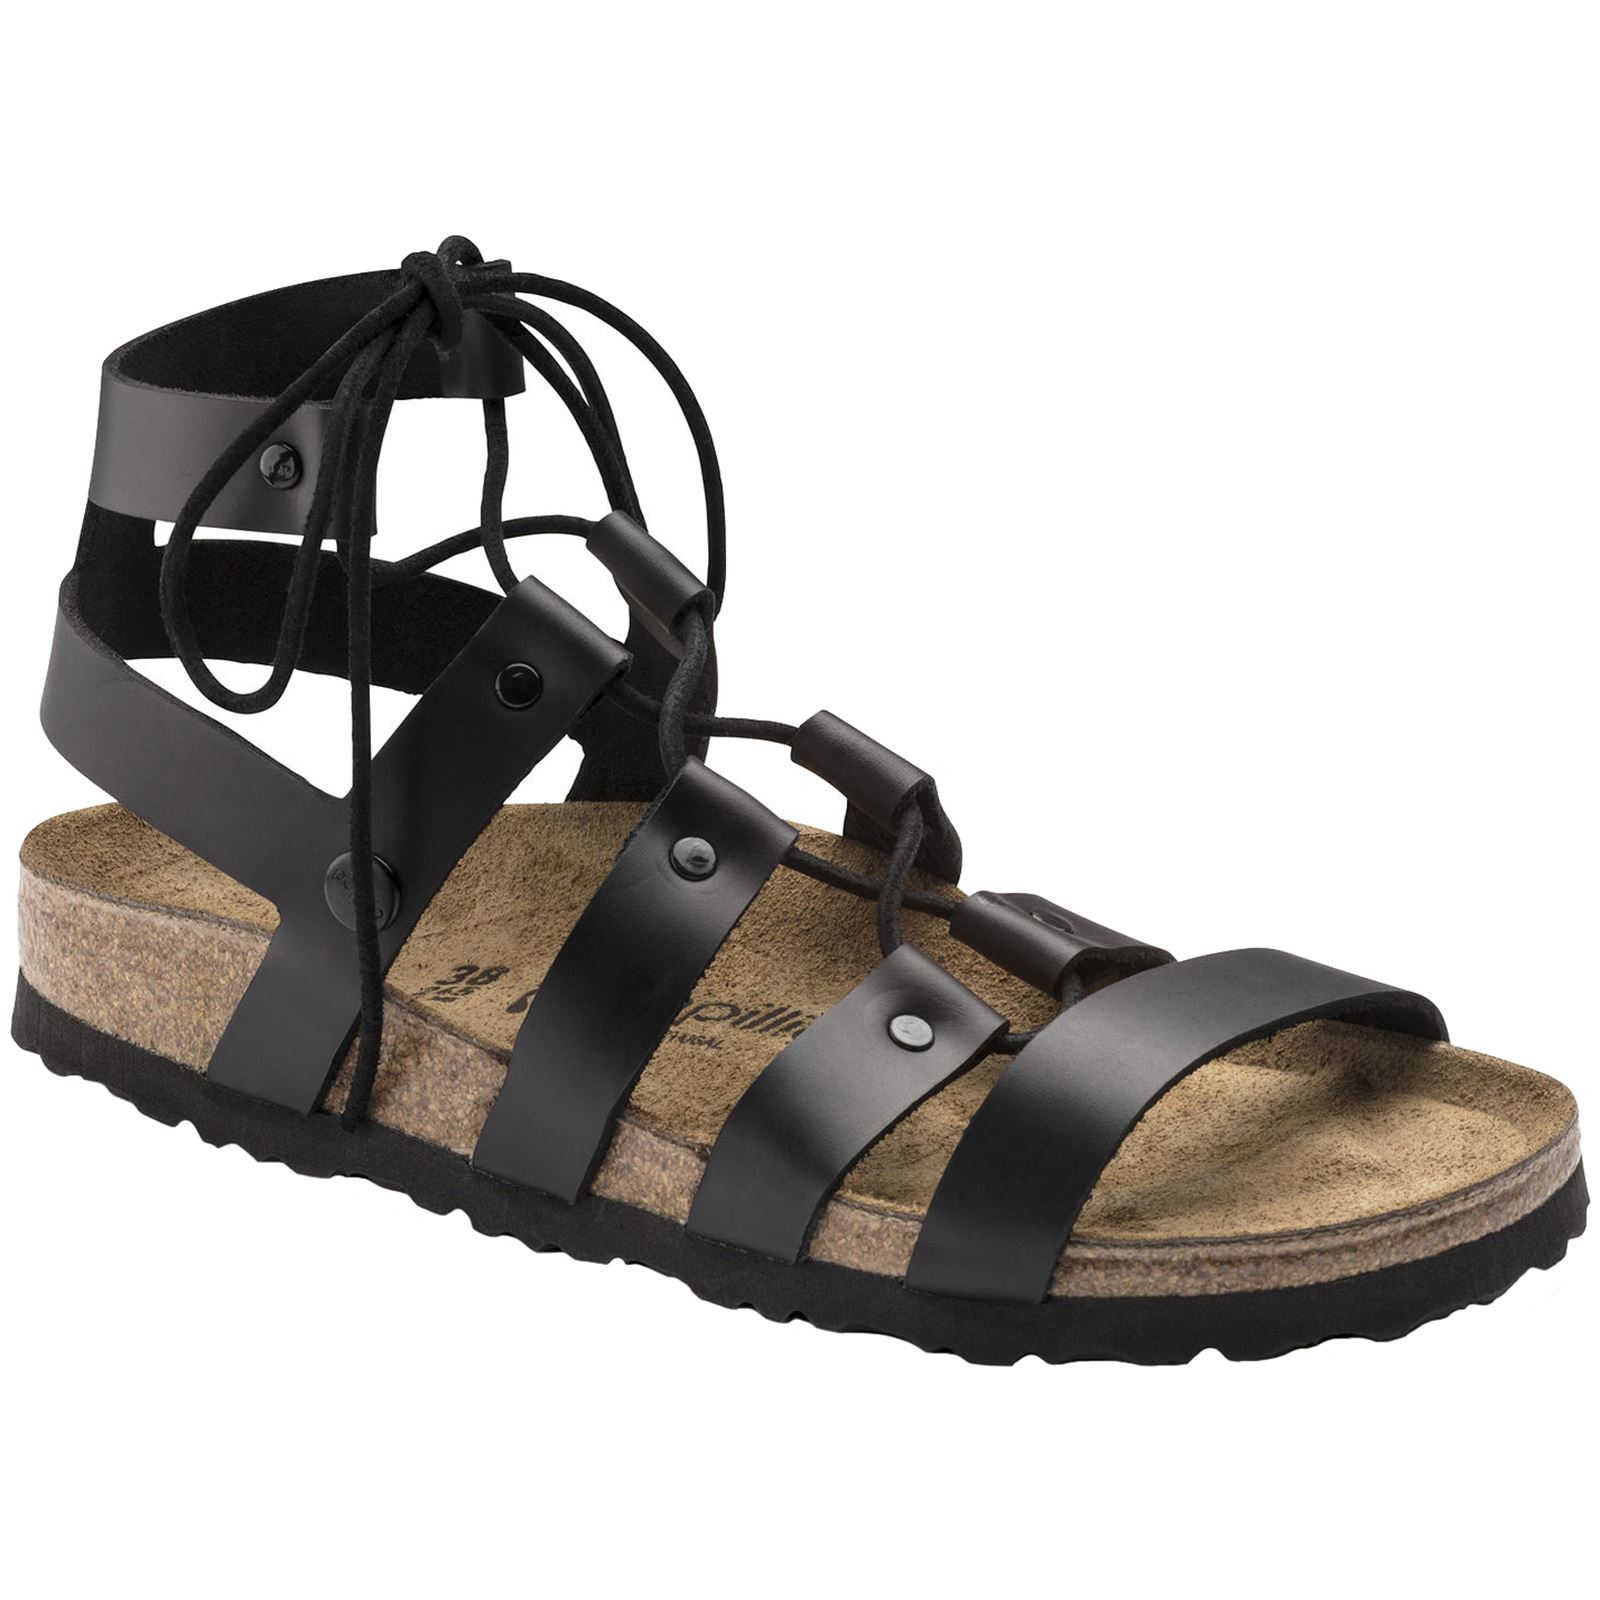 999dafac06d Details about Papillio by Birkenstock Cleo Black Womens Leather Gladiator  Strappy Sandals